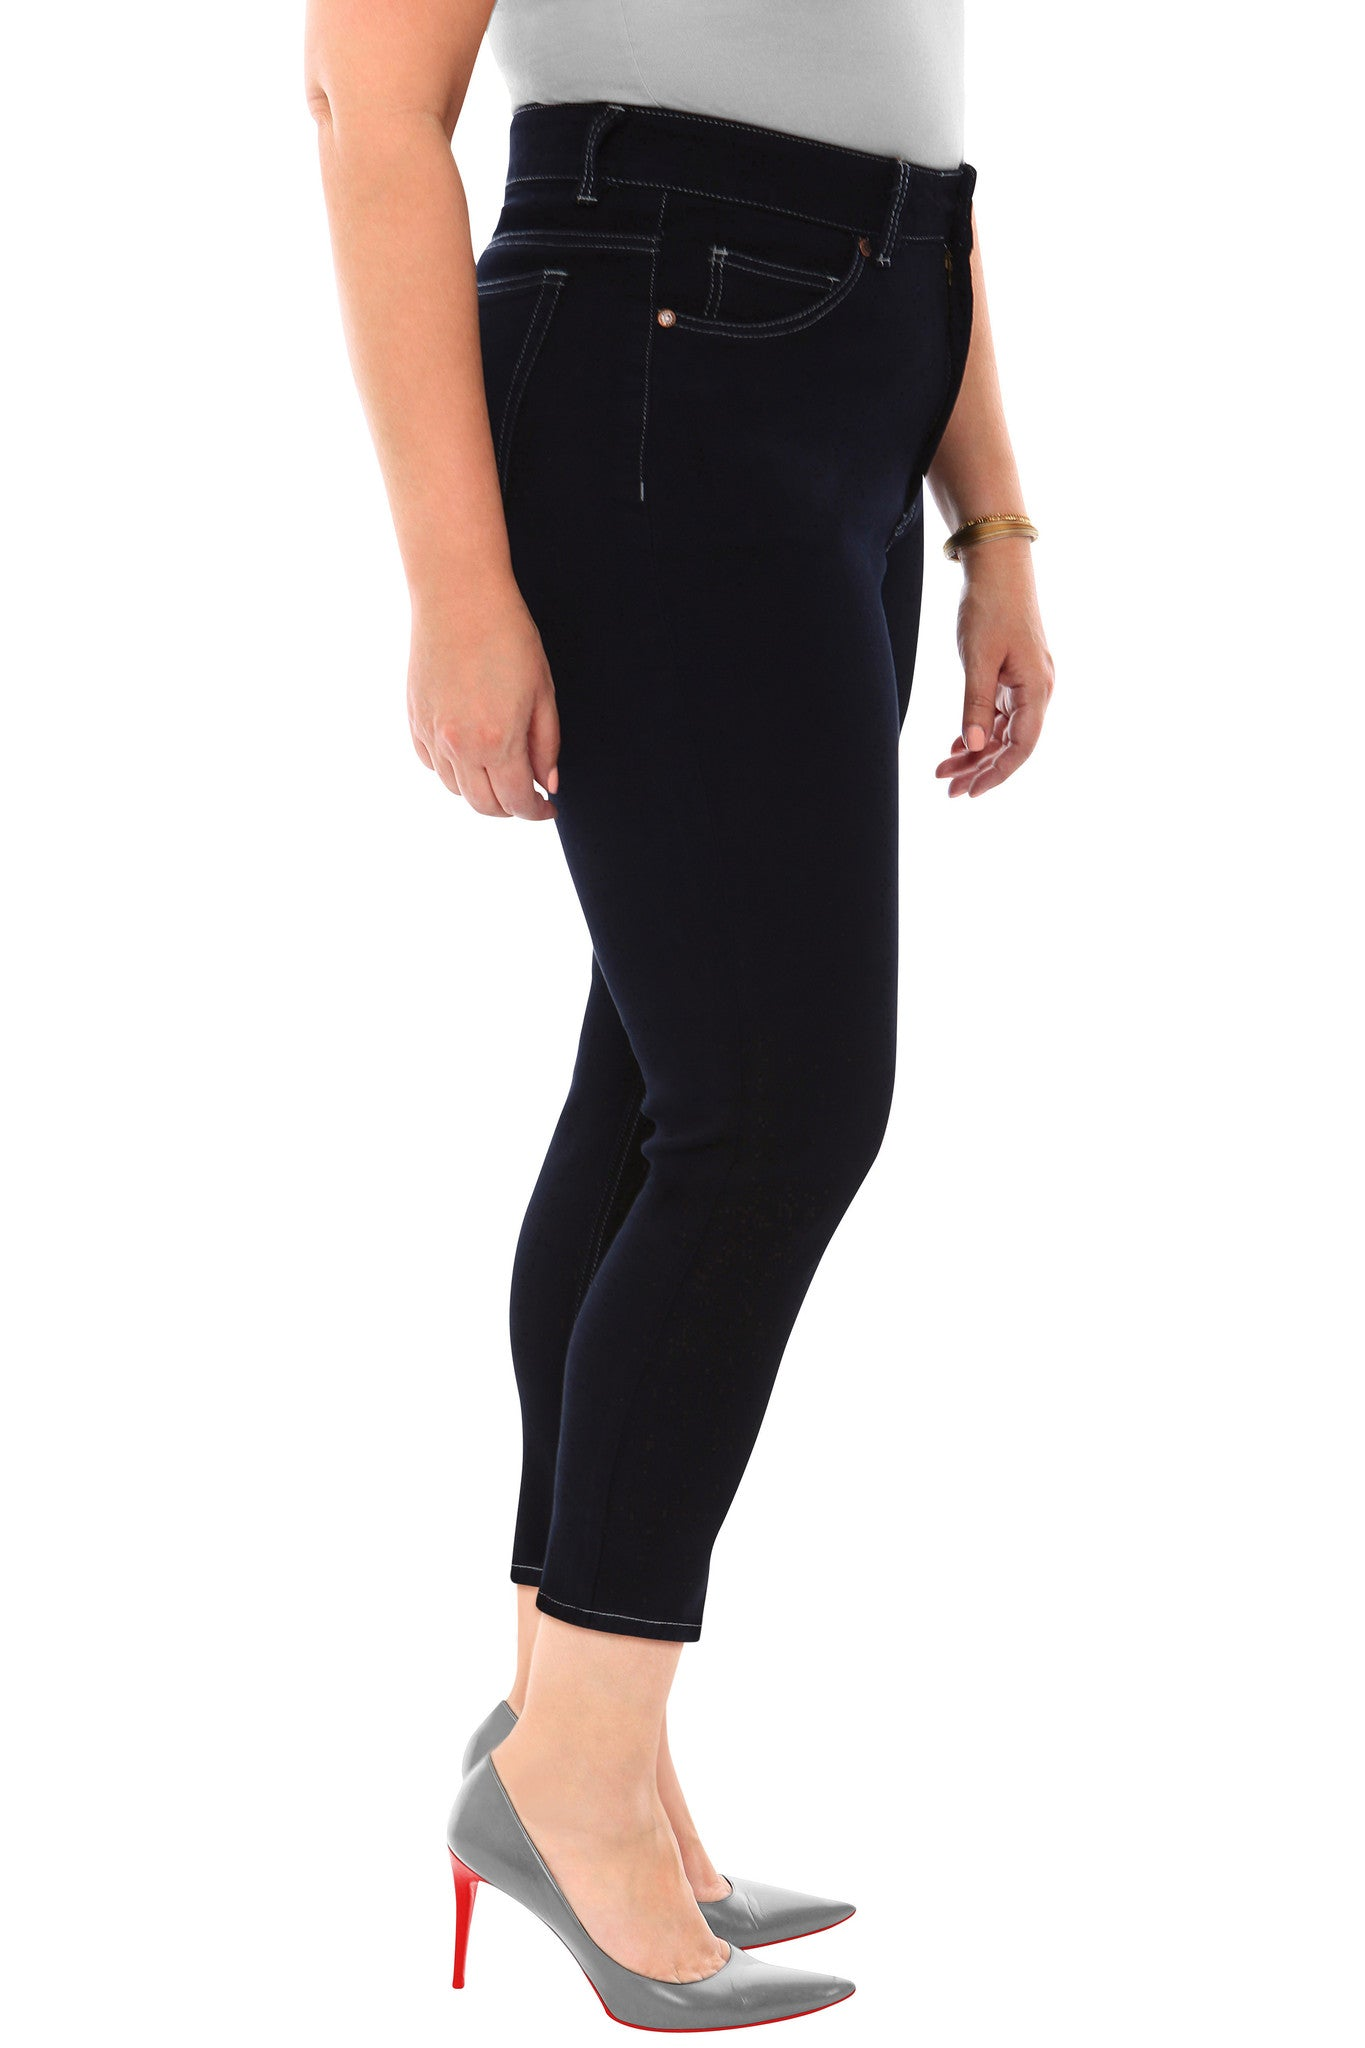 Black High Rise Ankle Skinny Plus Size Jeans or Jeggings